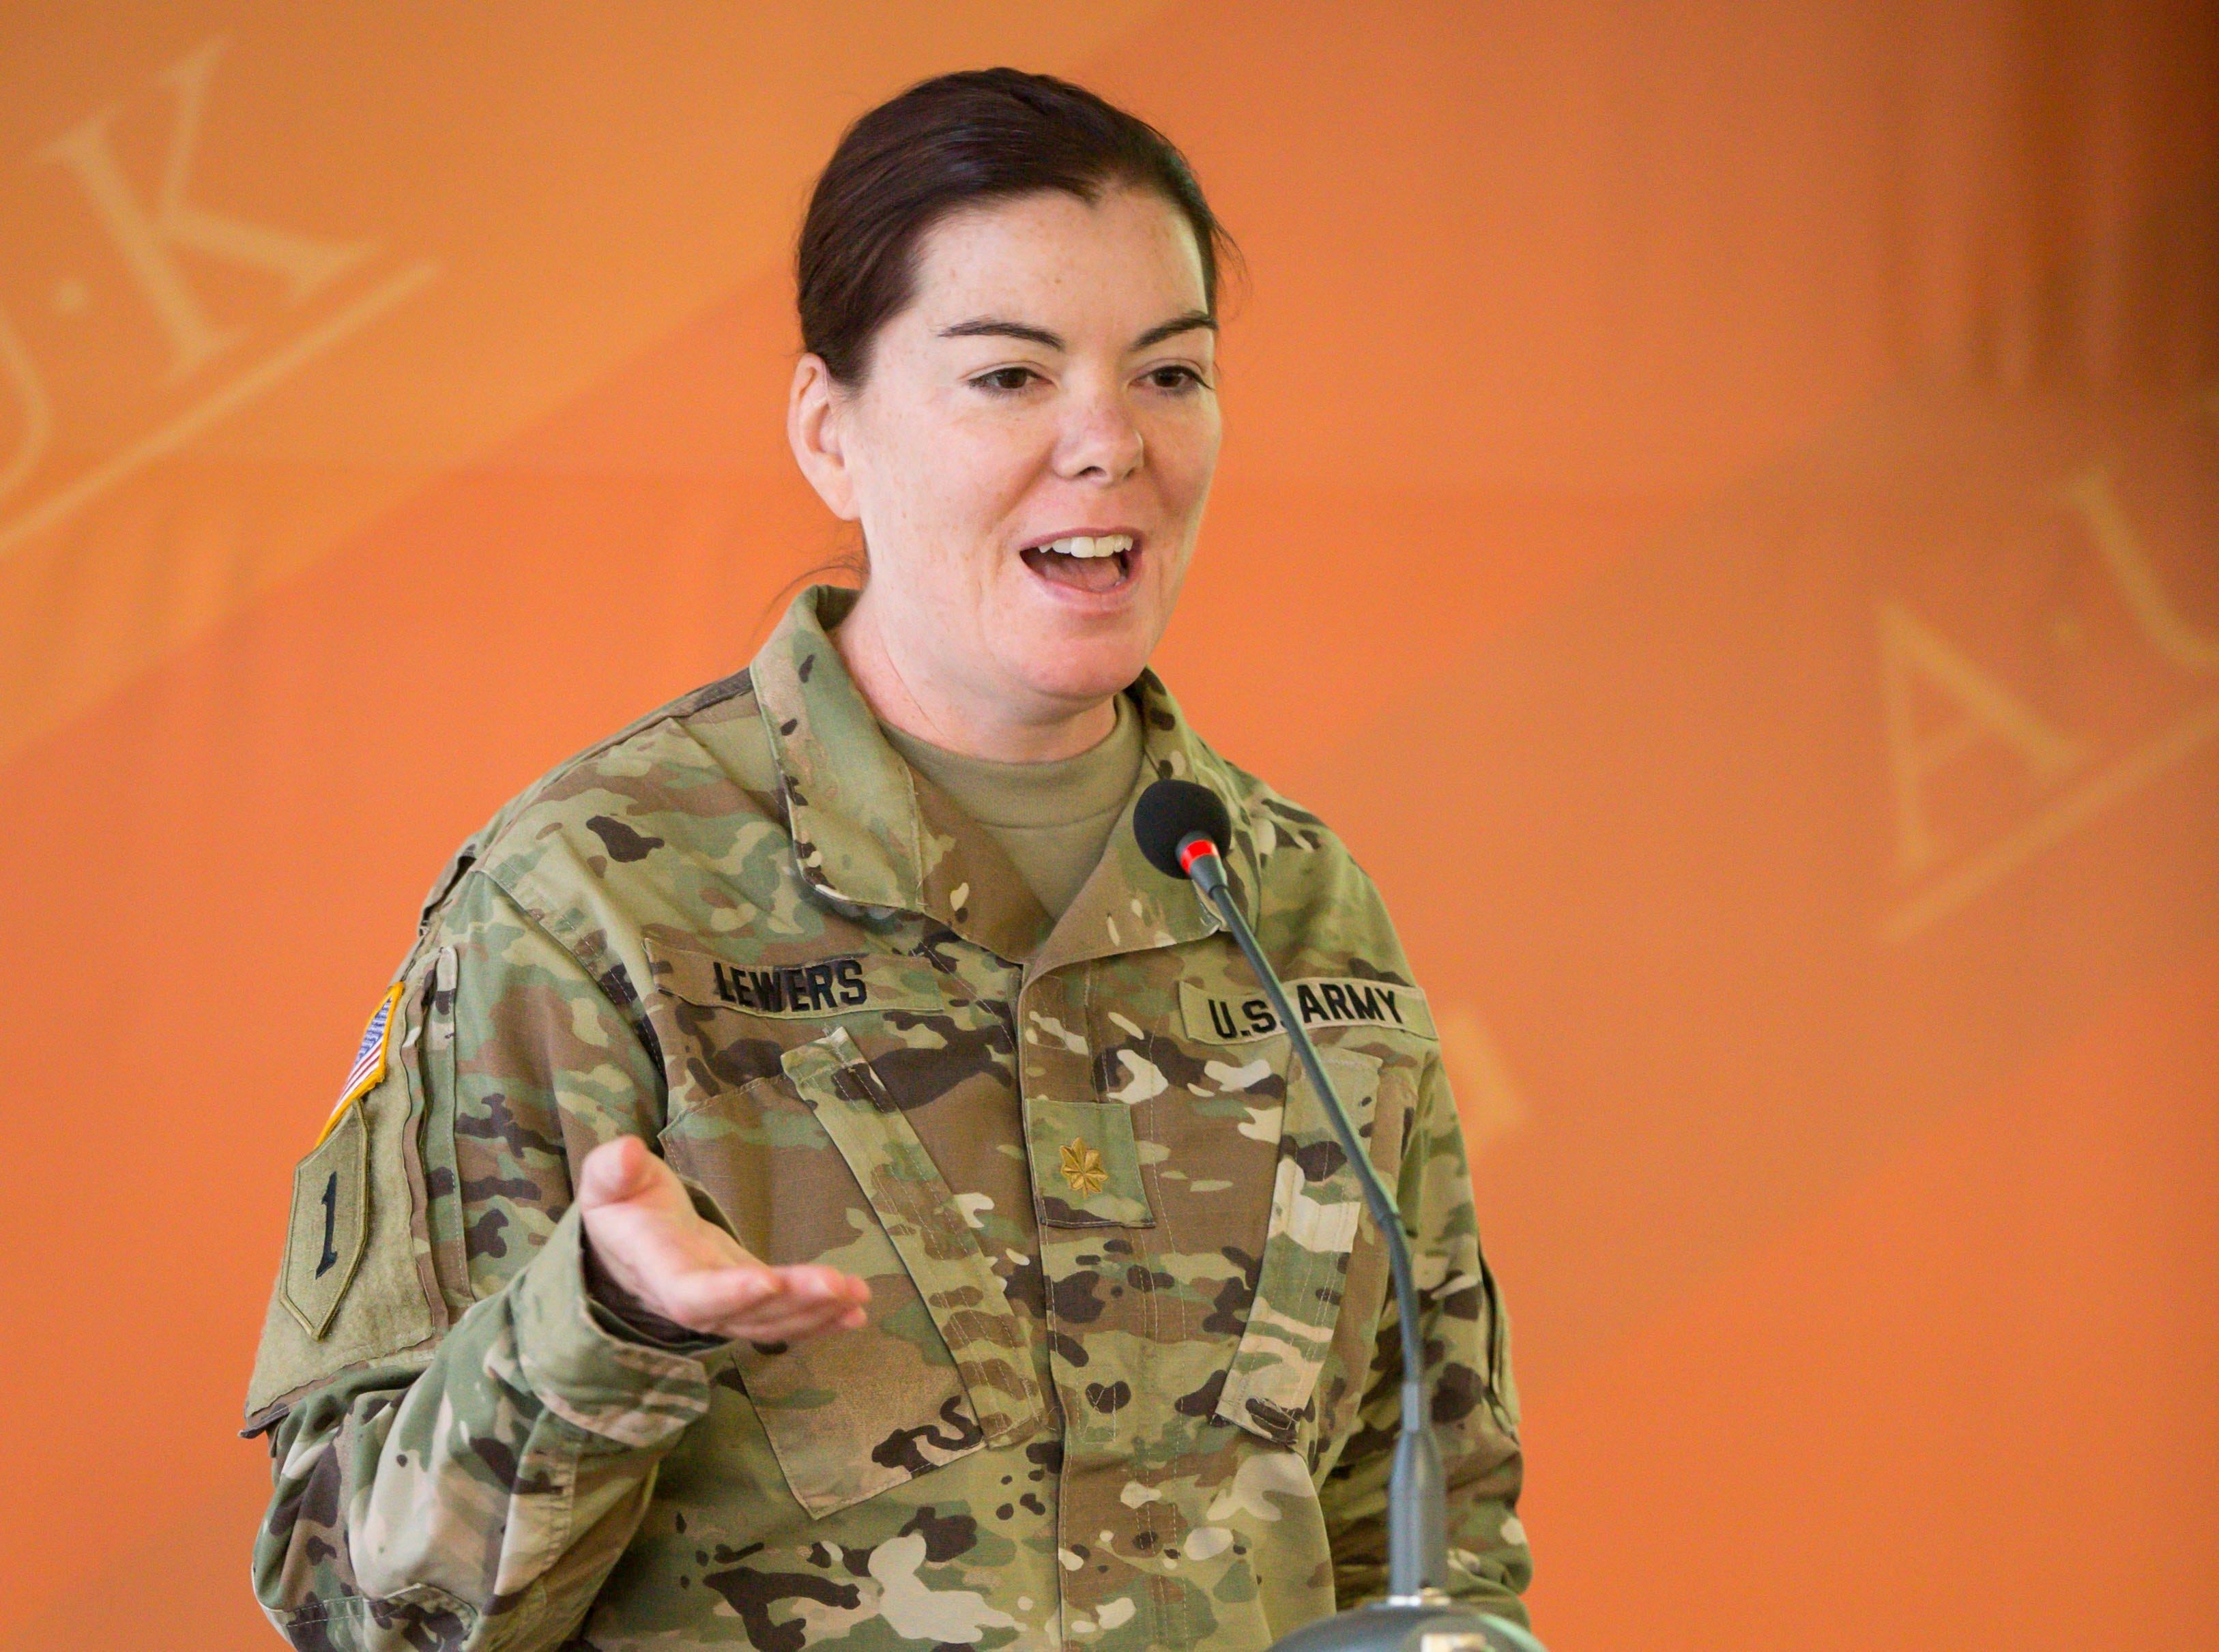 Maj. Kerri Lewers, 41, of West Des Moines, Bilateral Affairs Officer, part of the Department of Defense team within the American embassy coordinating assistance to the Kosovo Security Force (KSF).ÊShown here Tuesday, Sept. 18, 2018, at RIT's American University of Kosovo camps in Pristina.